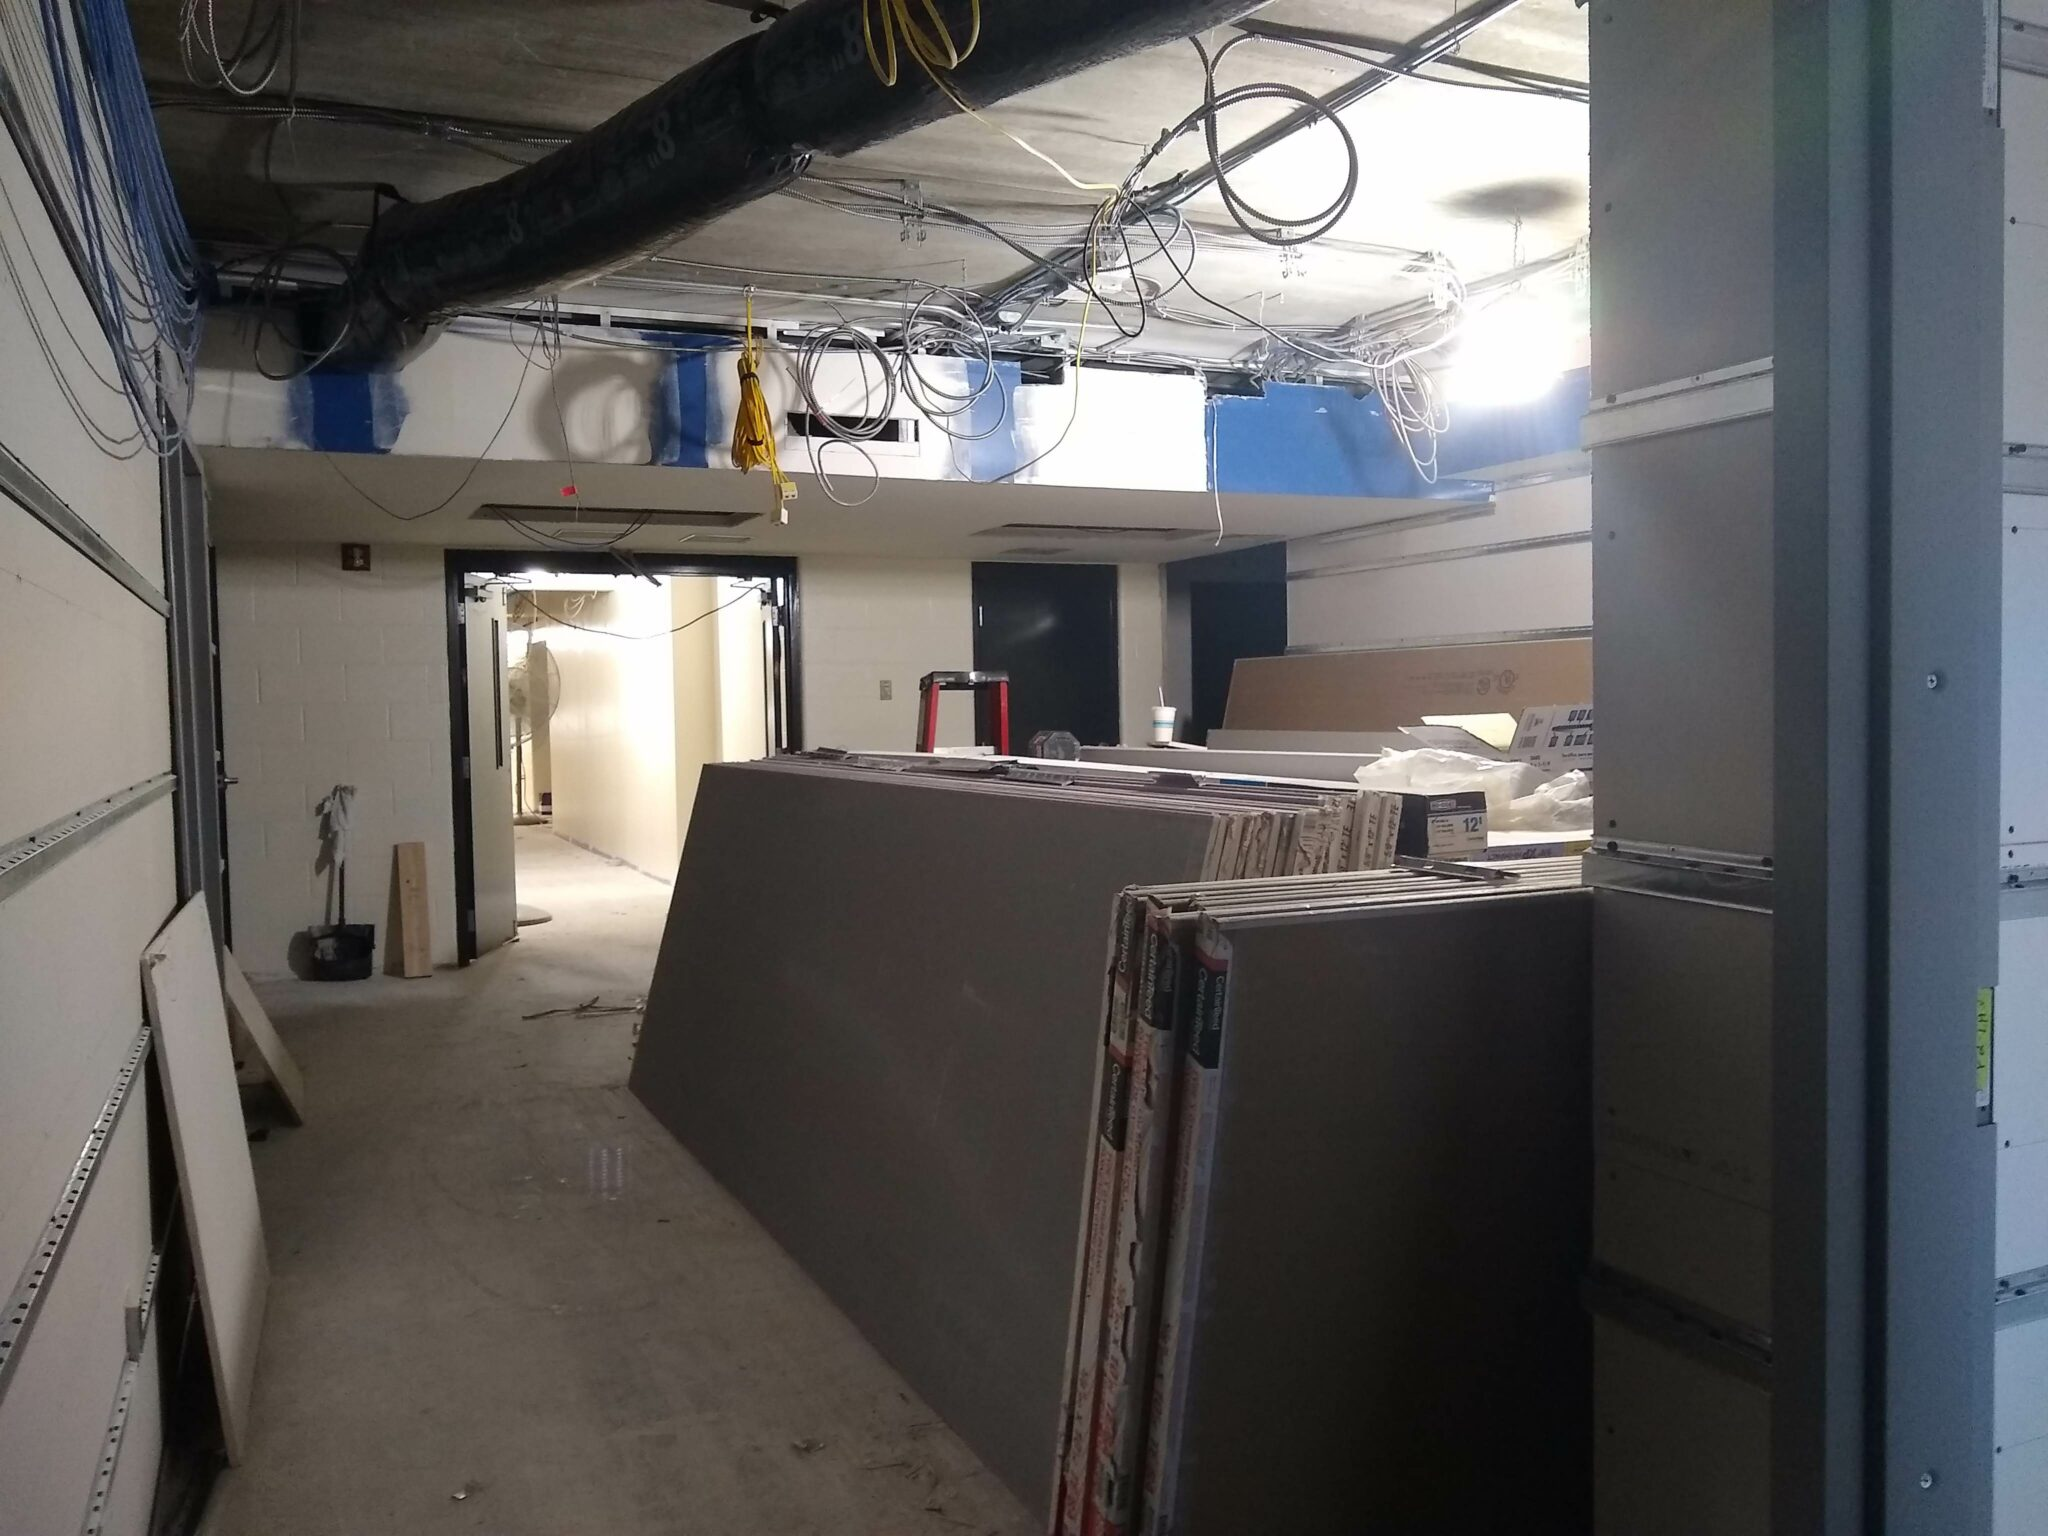 hs ms offices being renovated